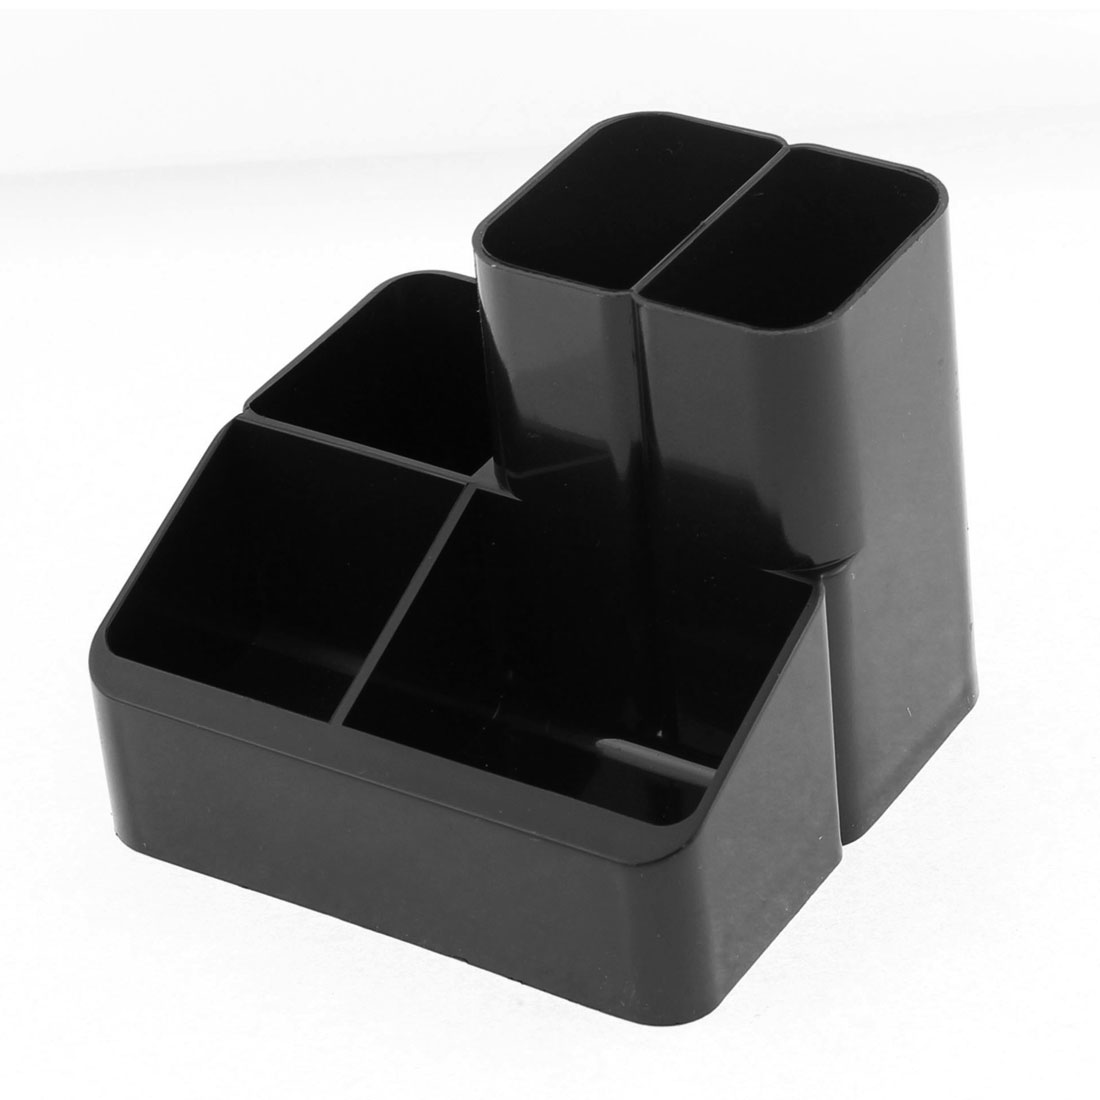 Multifunction Plastic 5 Slots Pen Pencil Holder Organizer Box Case Black